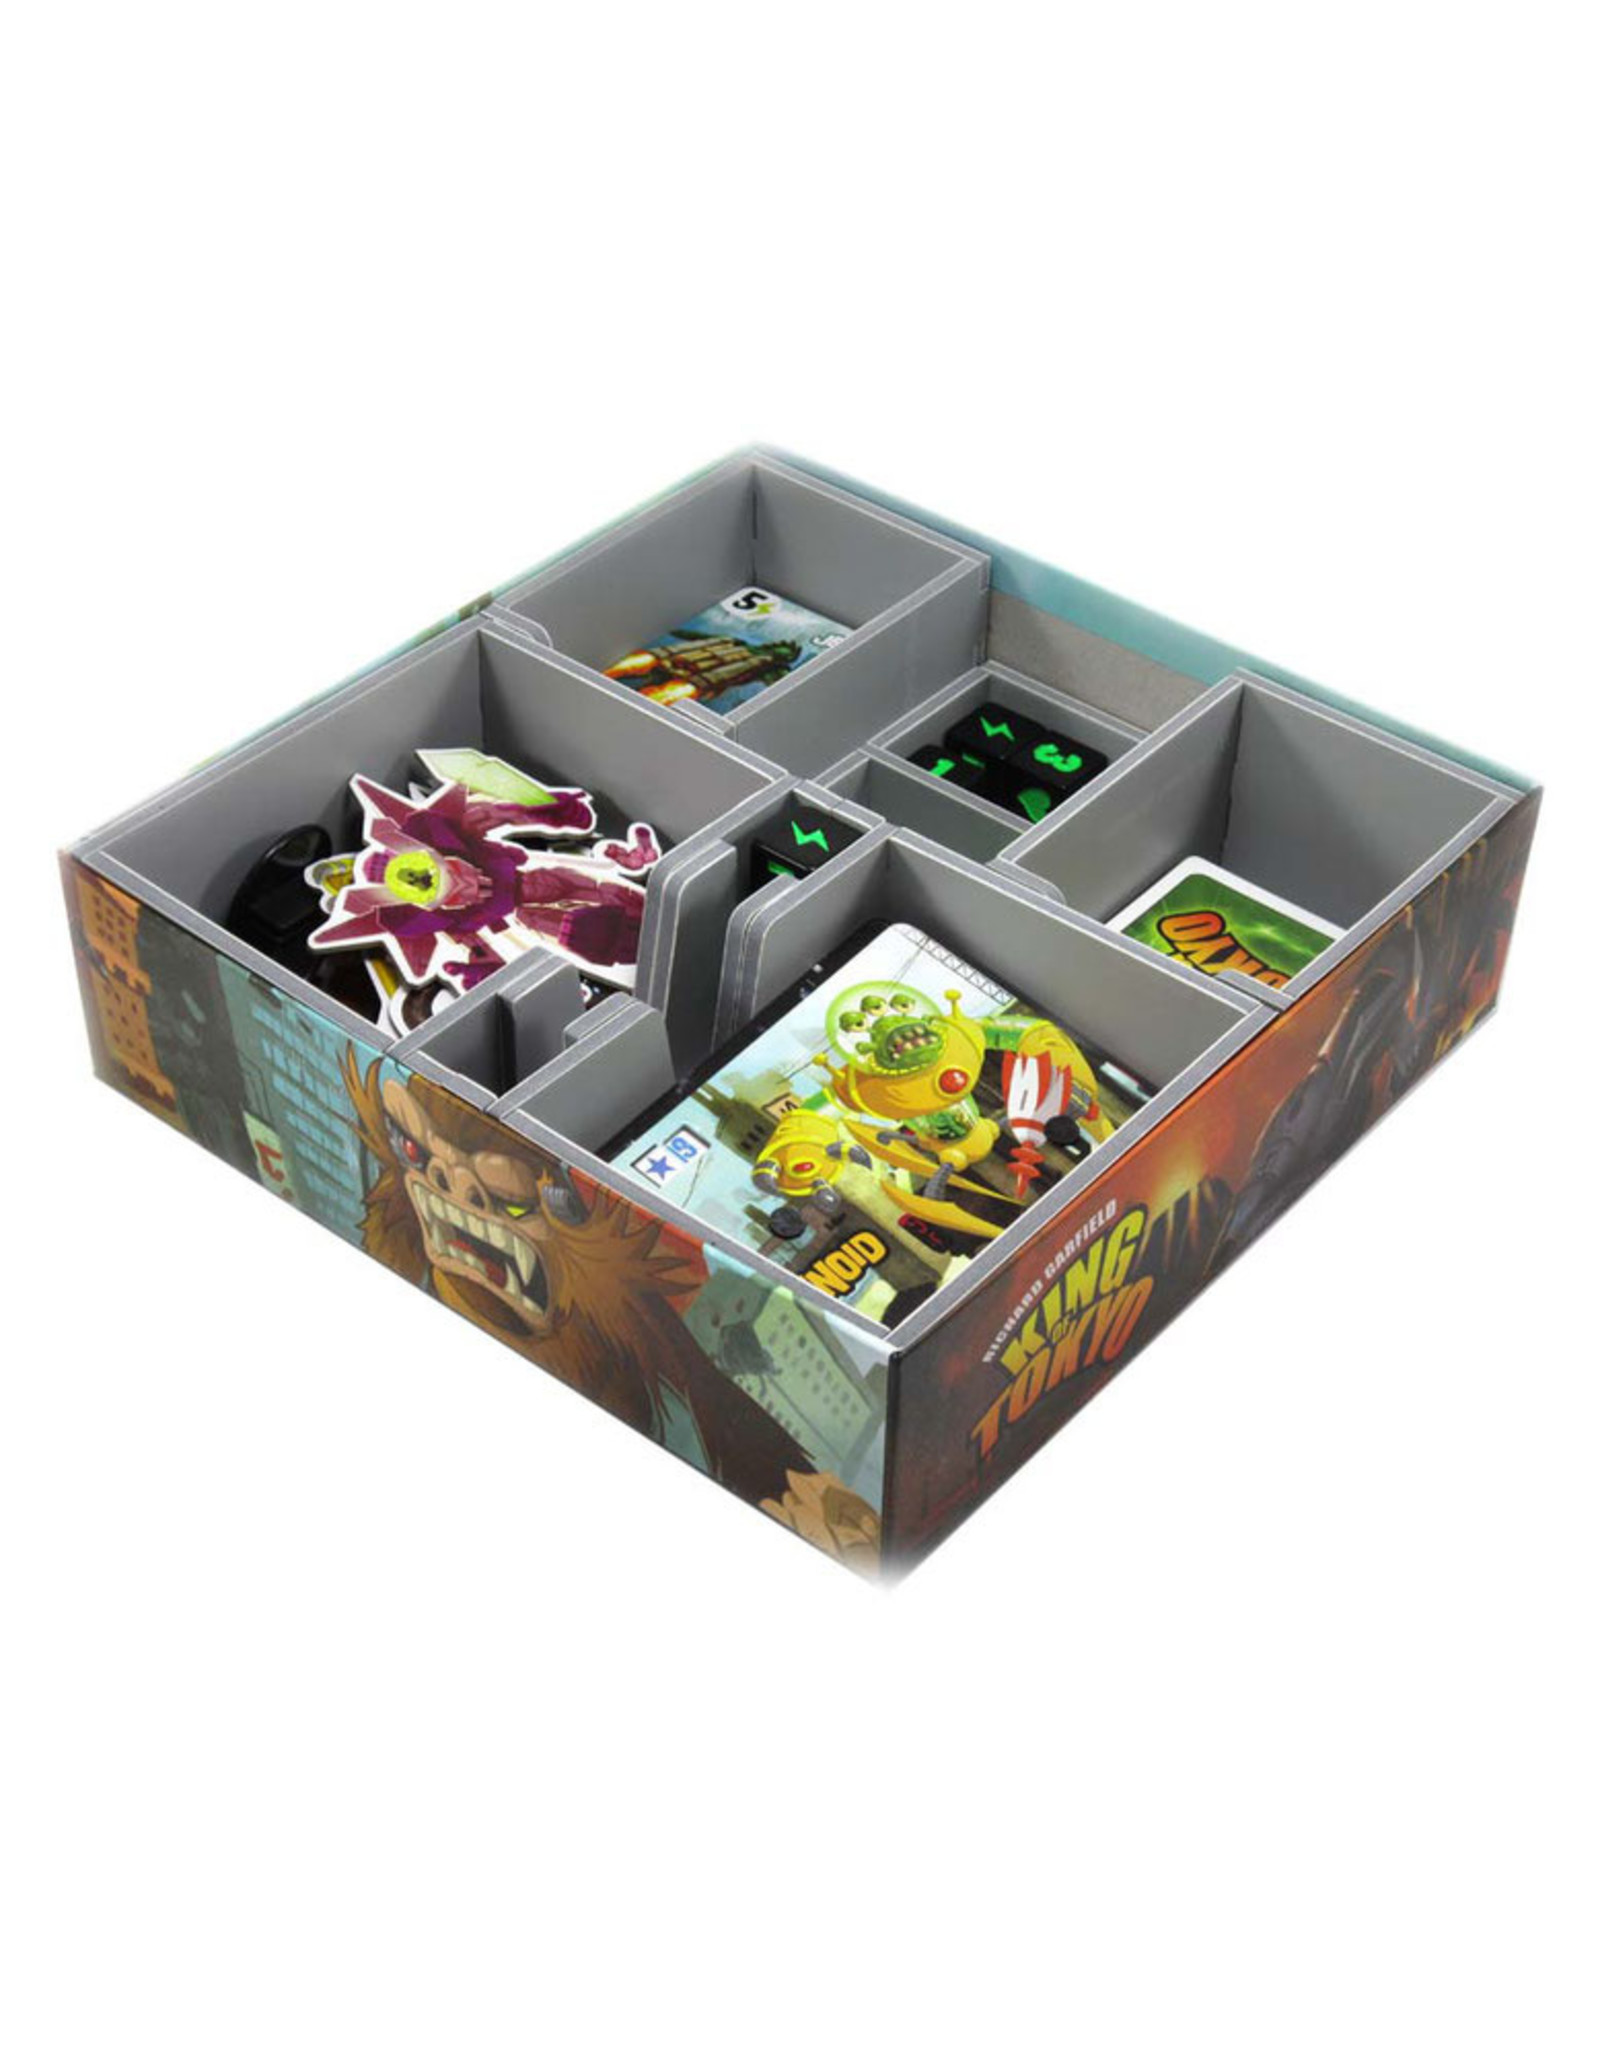 Folded Space Box Insert: King of Tokyo & Exps